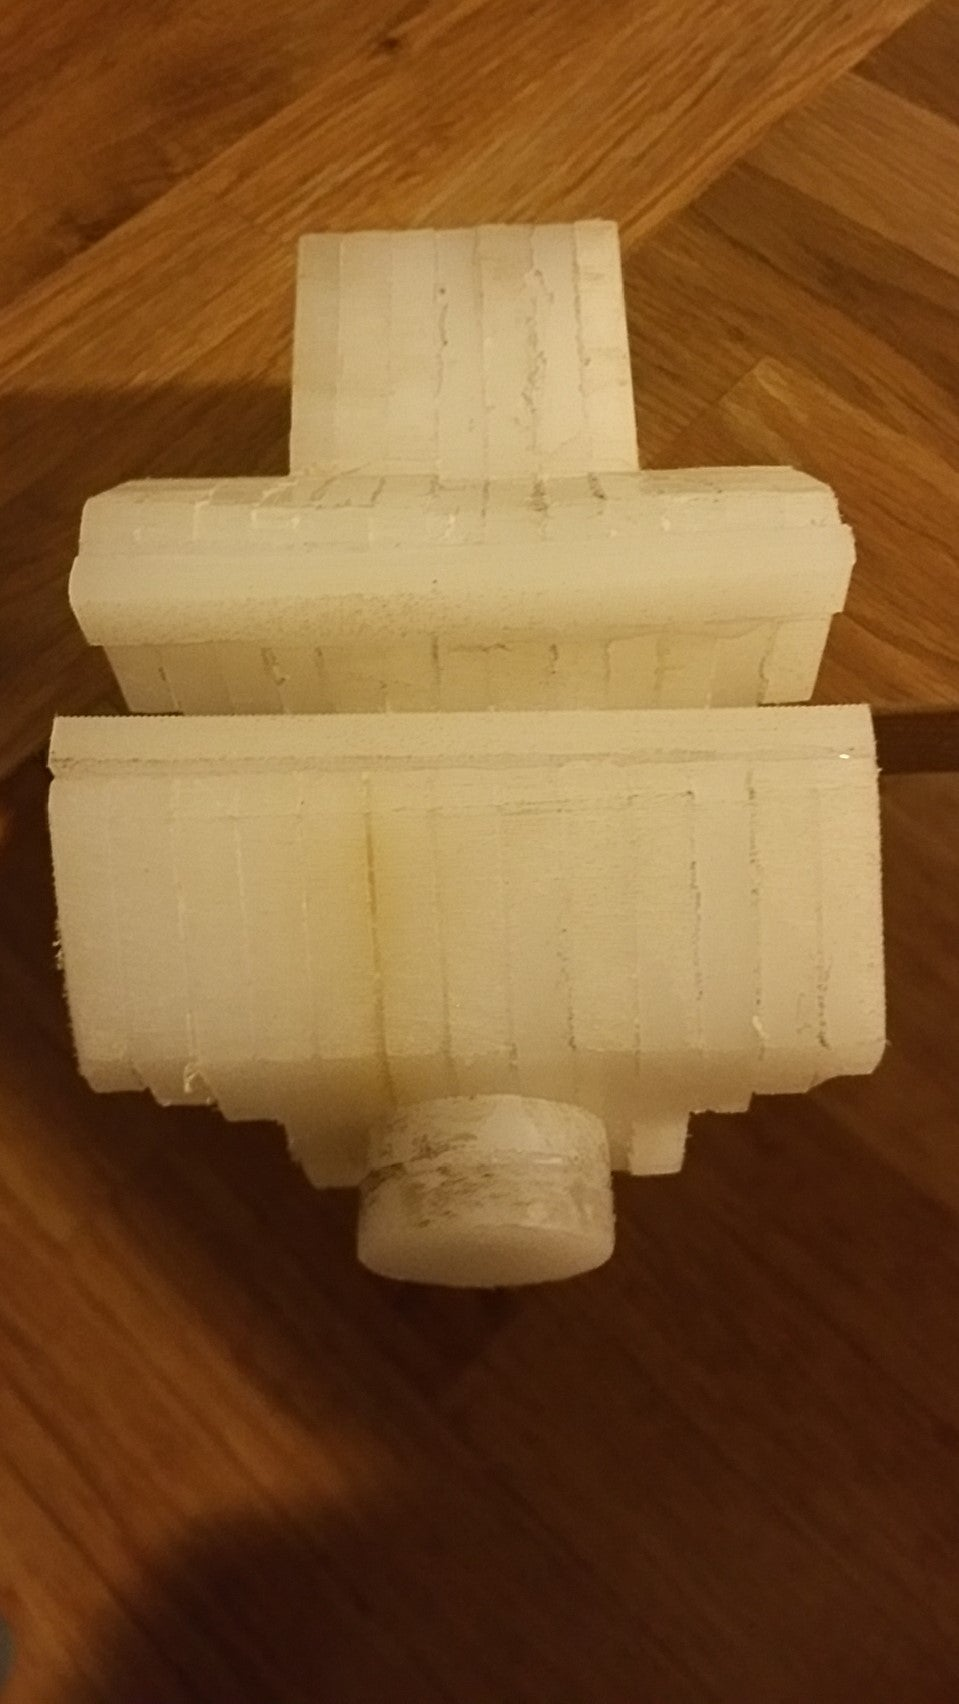 Plastic Vise From 2 IKEA Cutting Boards